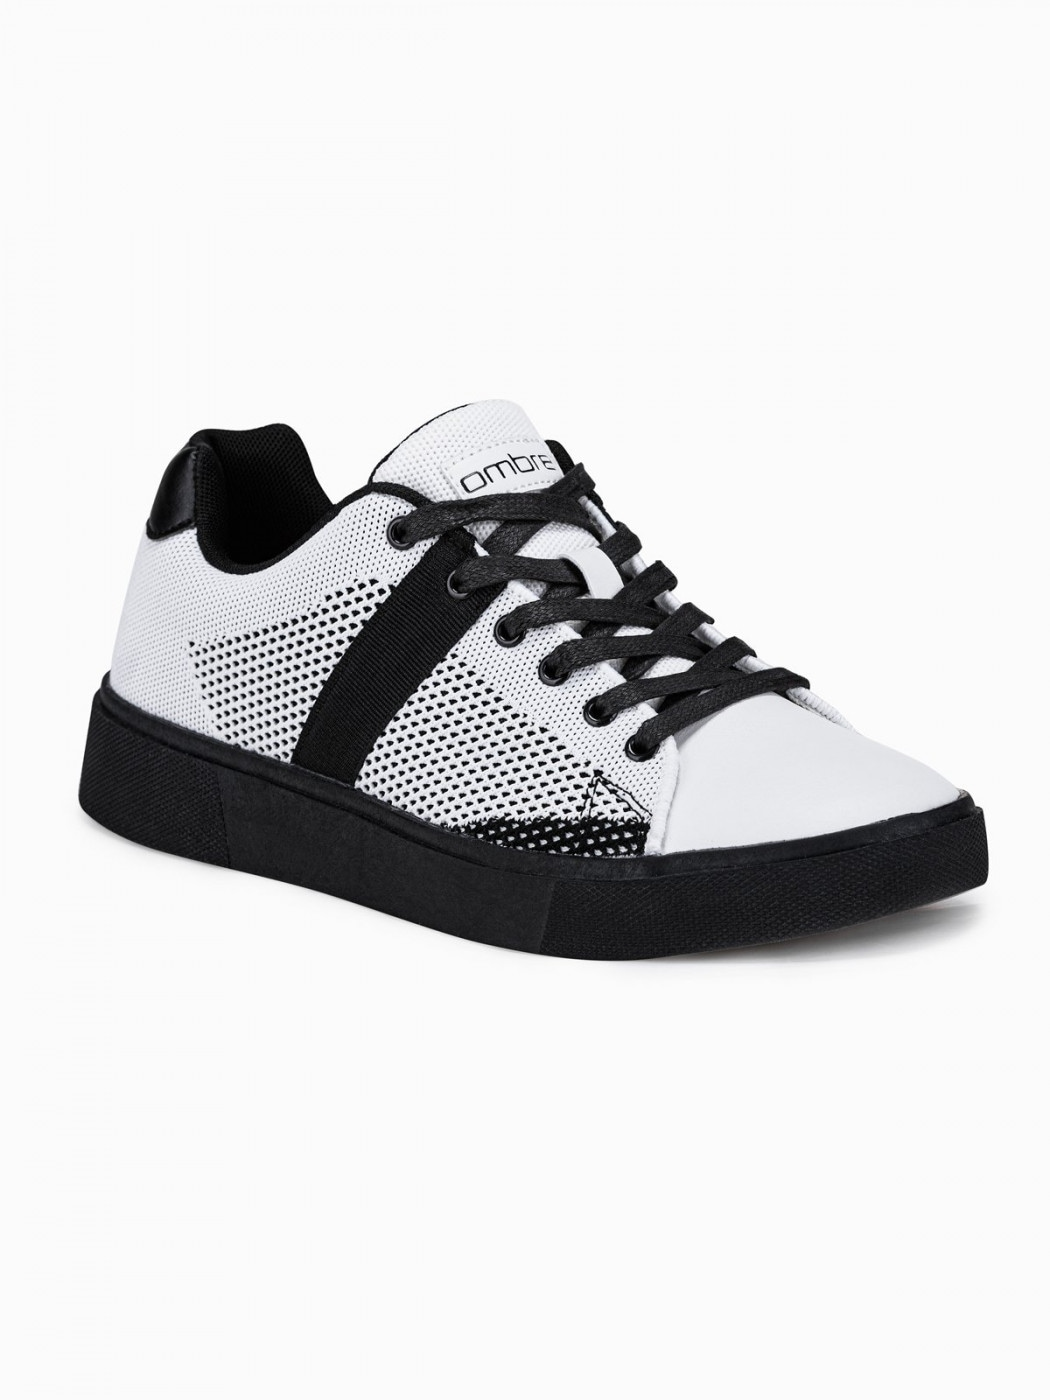 Ombre Clothing Men's high-top trainers T344